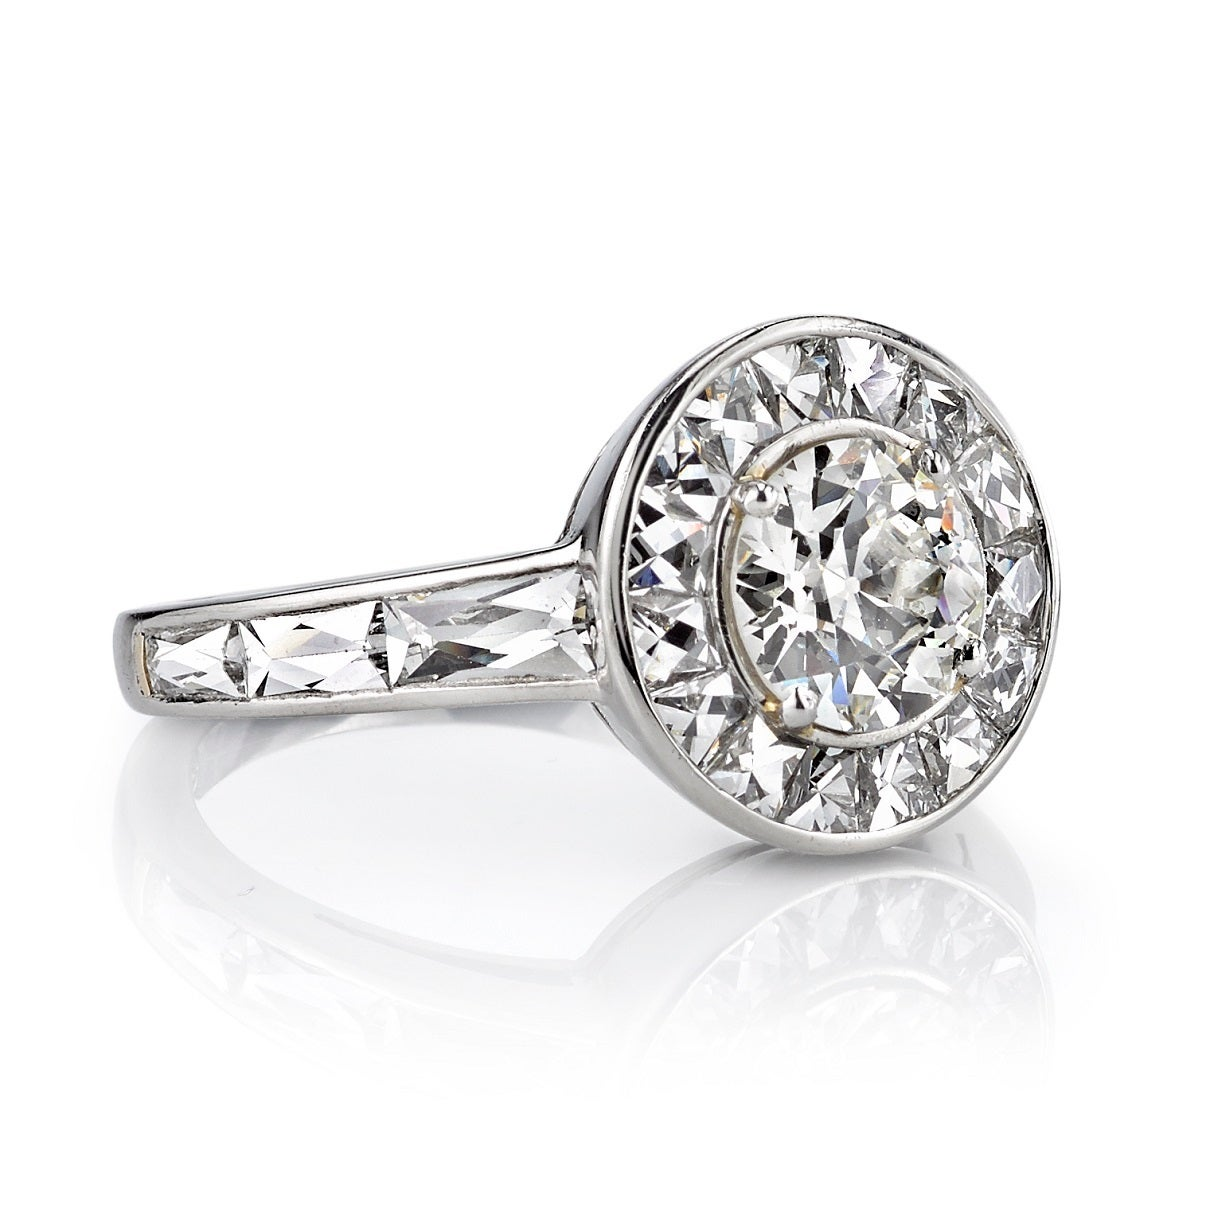 Round Diamond Surrounded By French Cut Diamonds Engagement